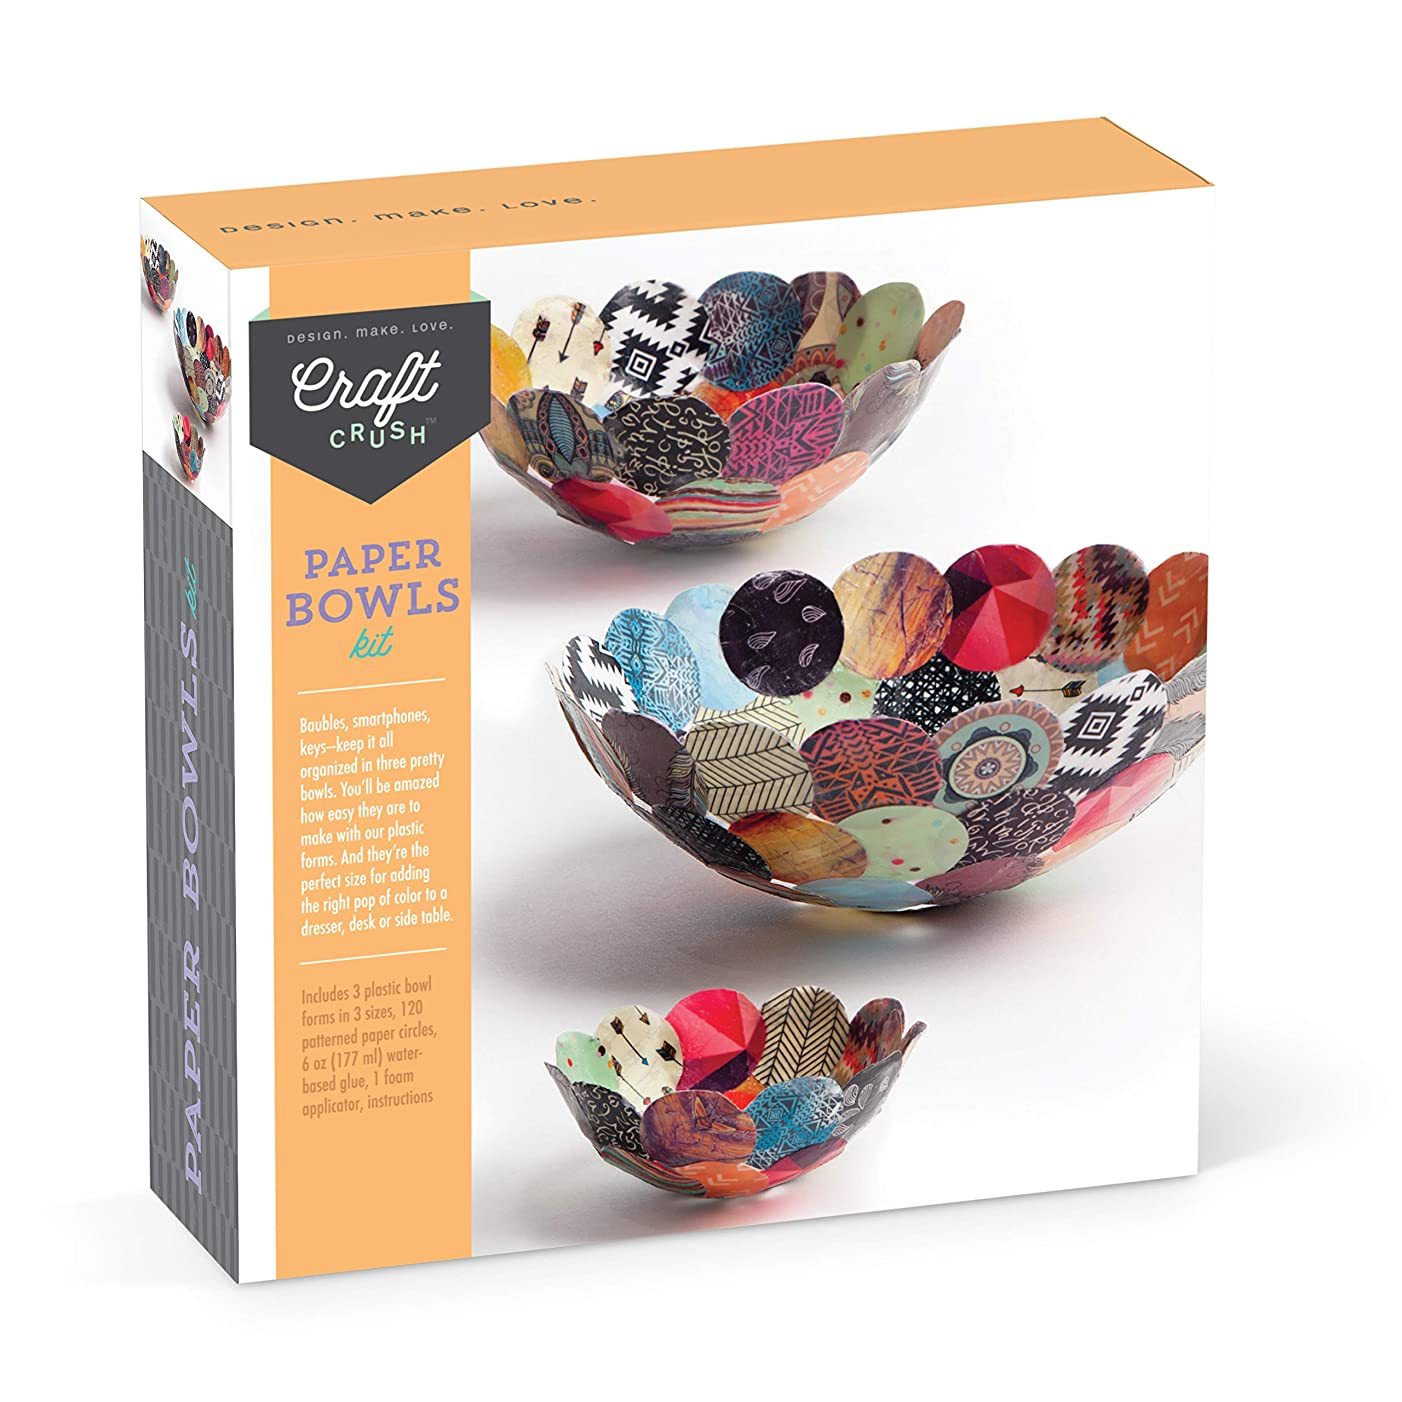 Craft Crush AC1602 Paper Craft Kit Makes 3 DIY Different-Sized Decorative Bowls